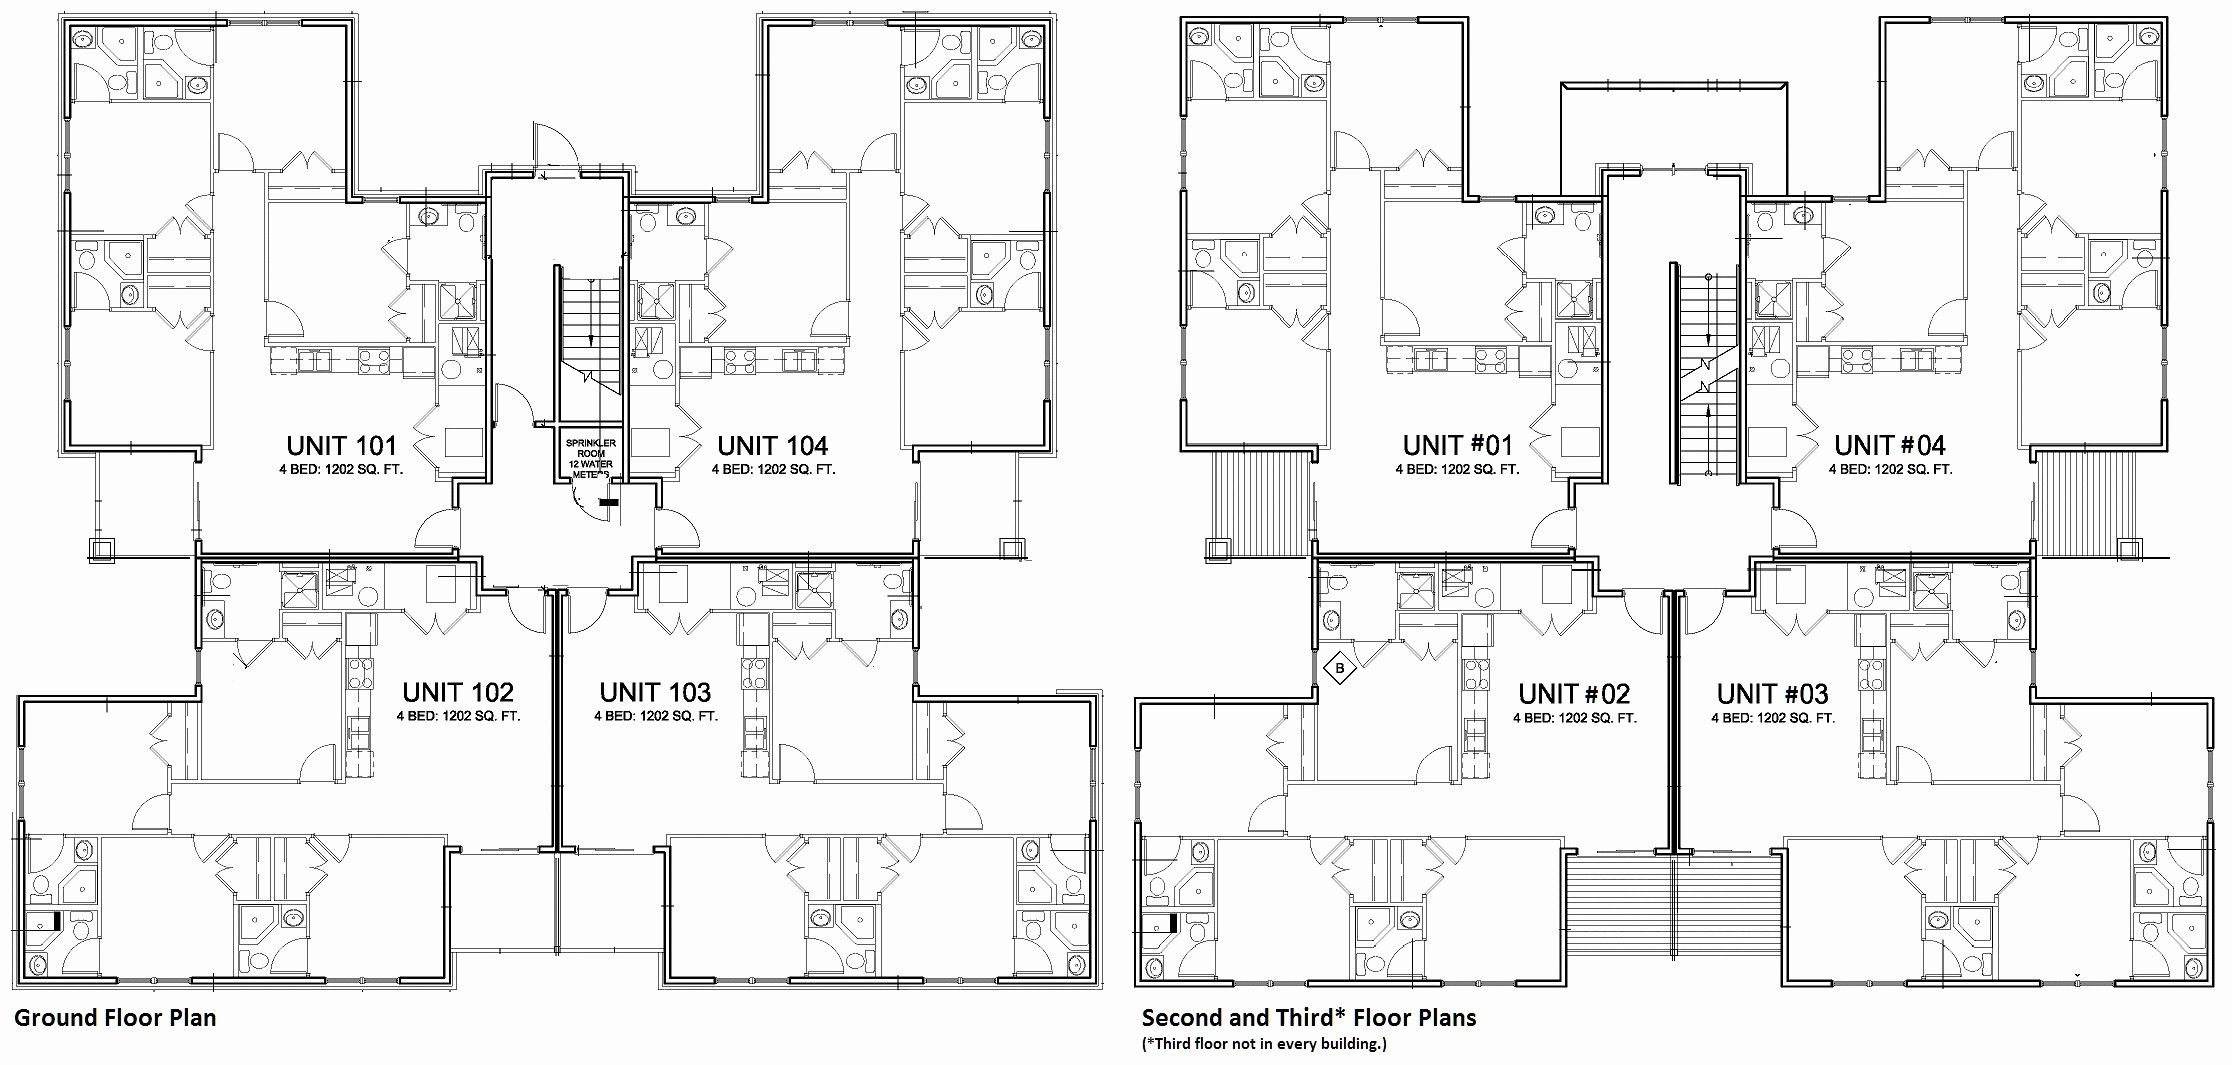 30 50 House Map Floor Plan Ghar Banavo Prepossessing By Plans Theworkbench Apartment Building Apartment Floor Plans Cool House Designs